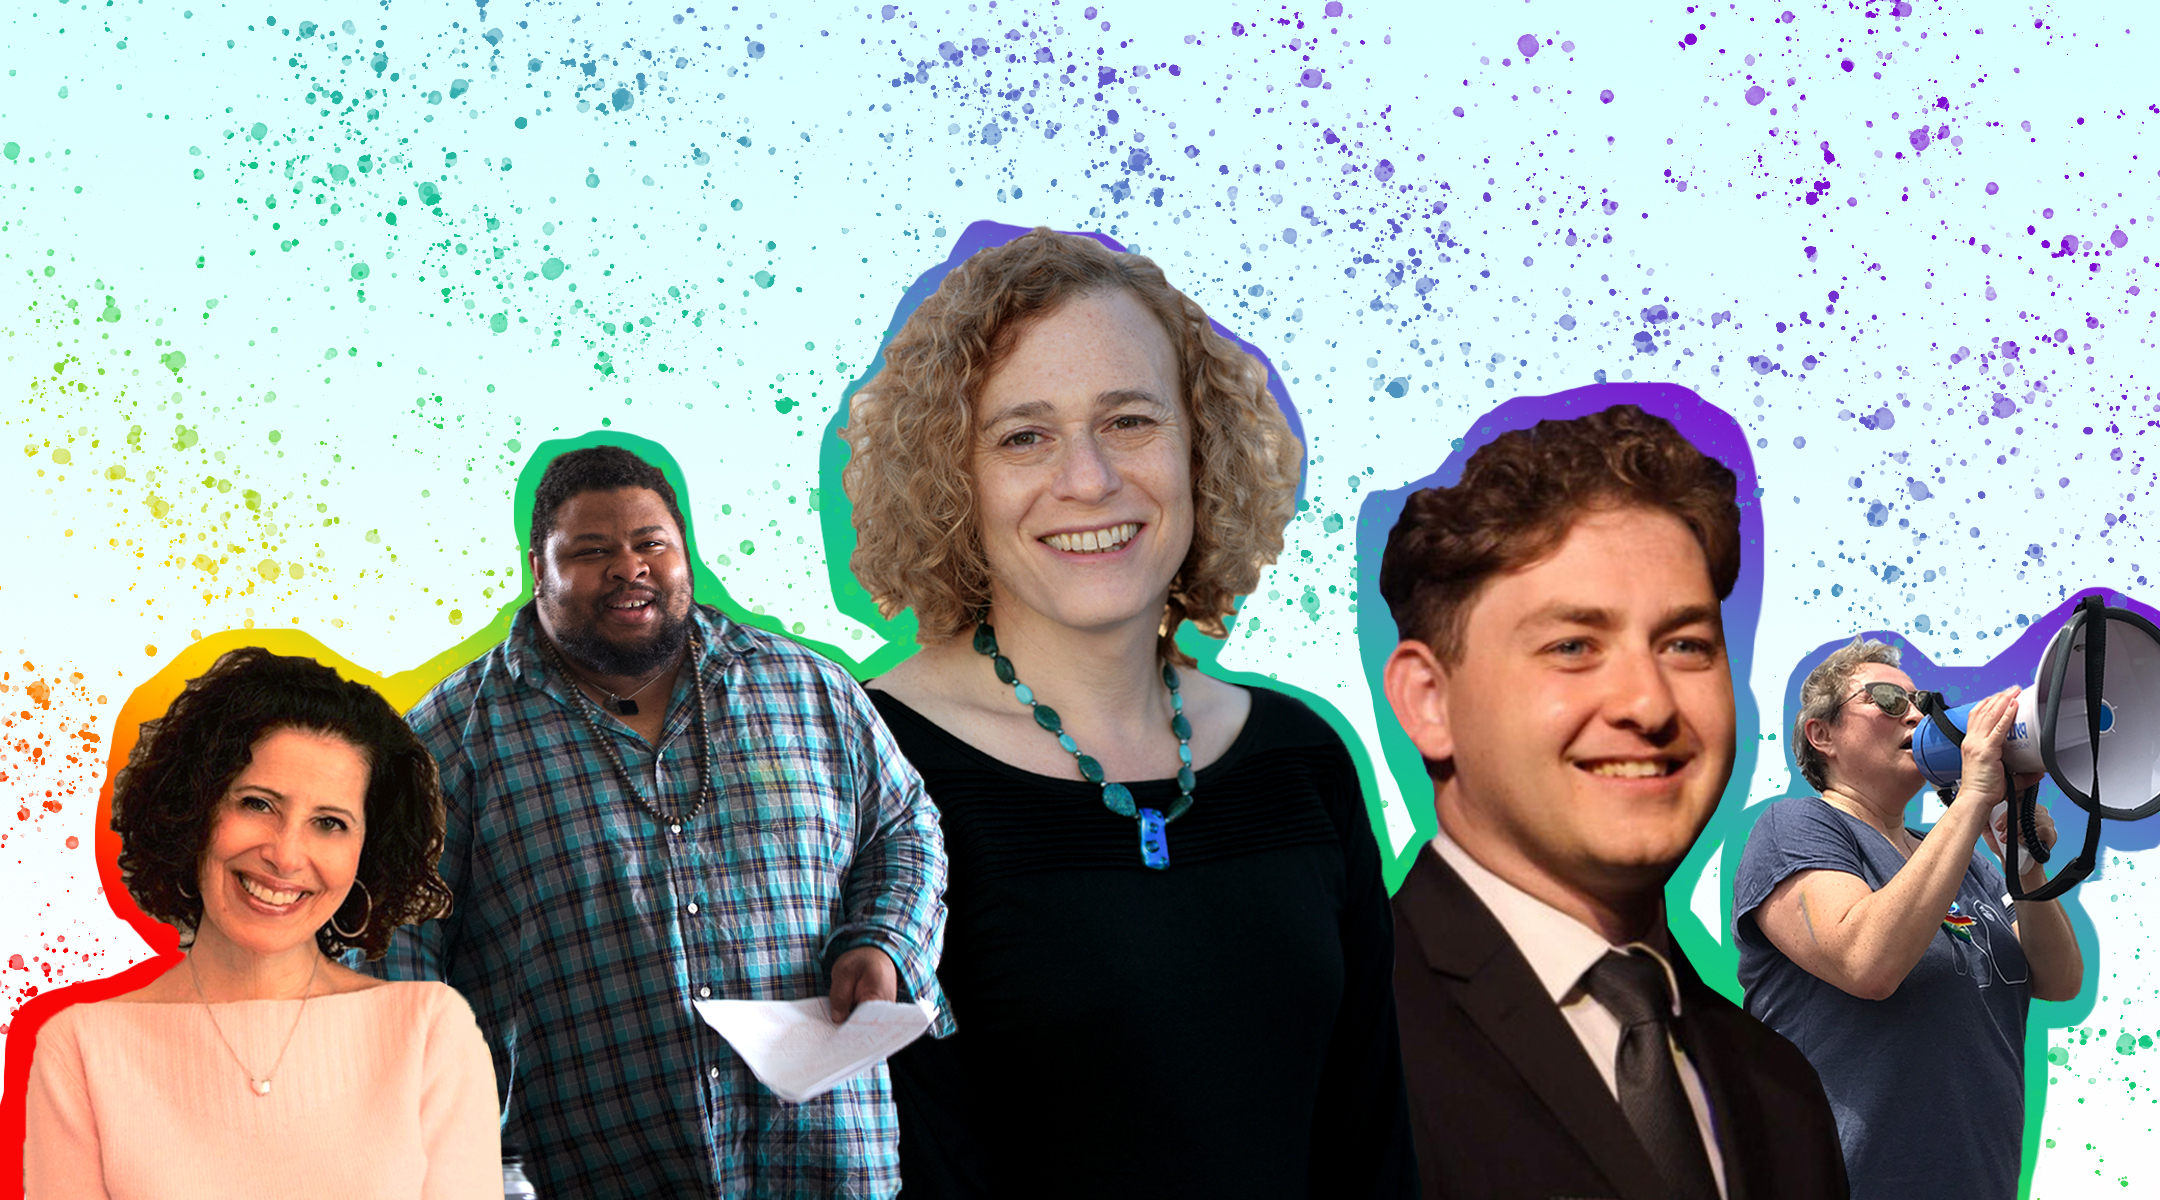 Pride month; From left to right, Lesléa Newman, Michael Twitty, Joy Ladin, Daniel Atwood and Yelena Goltsman reflect on celebrating Pride in 2020. (Header image design by Grace Yagel)